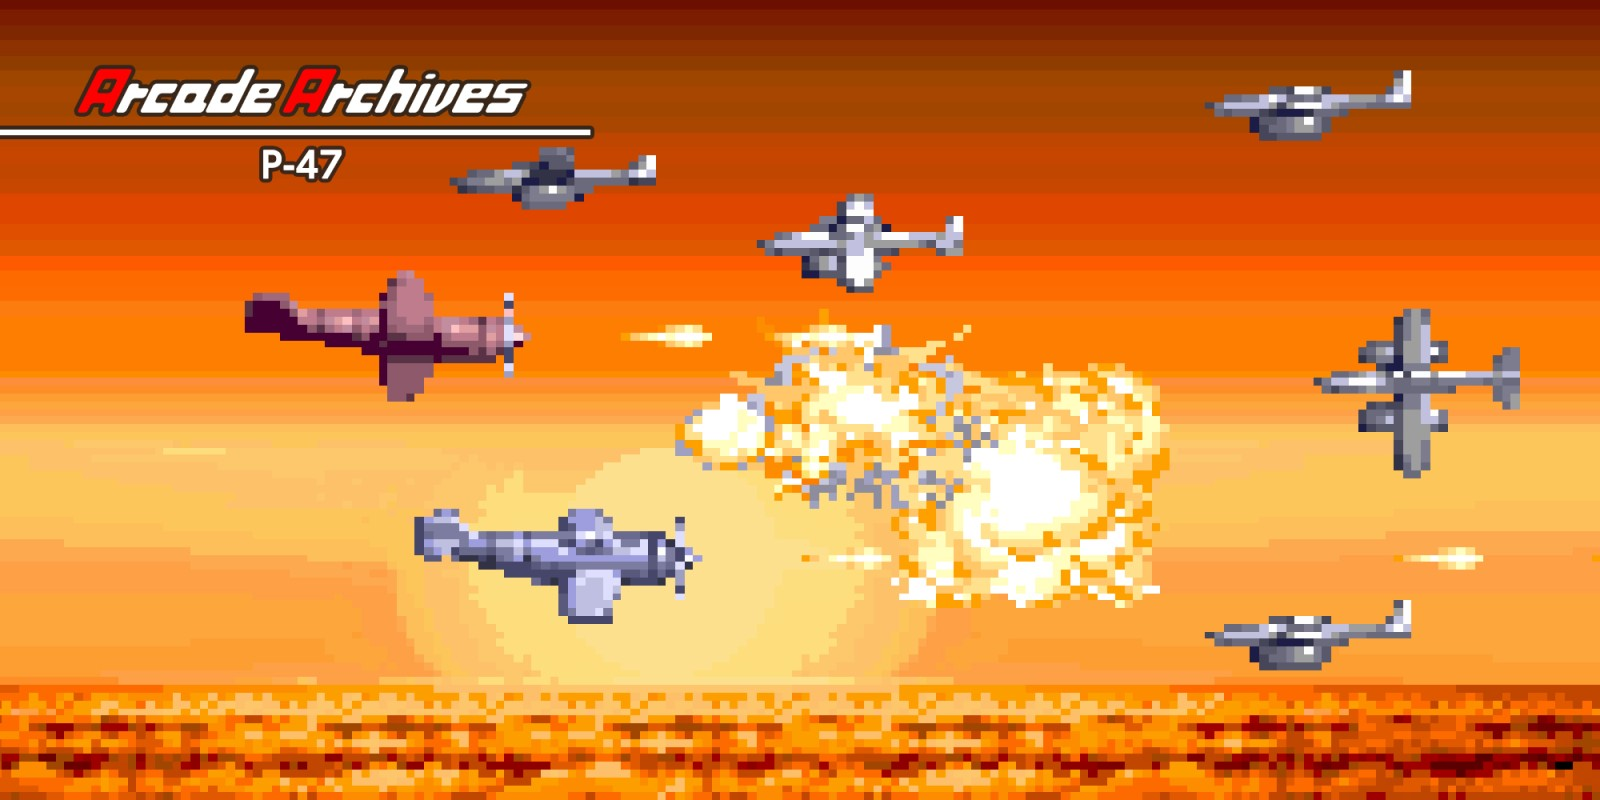 Arcade Archives P-47